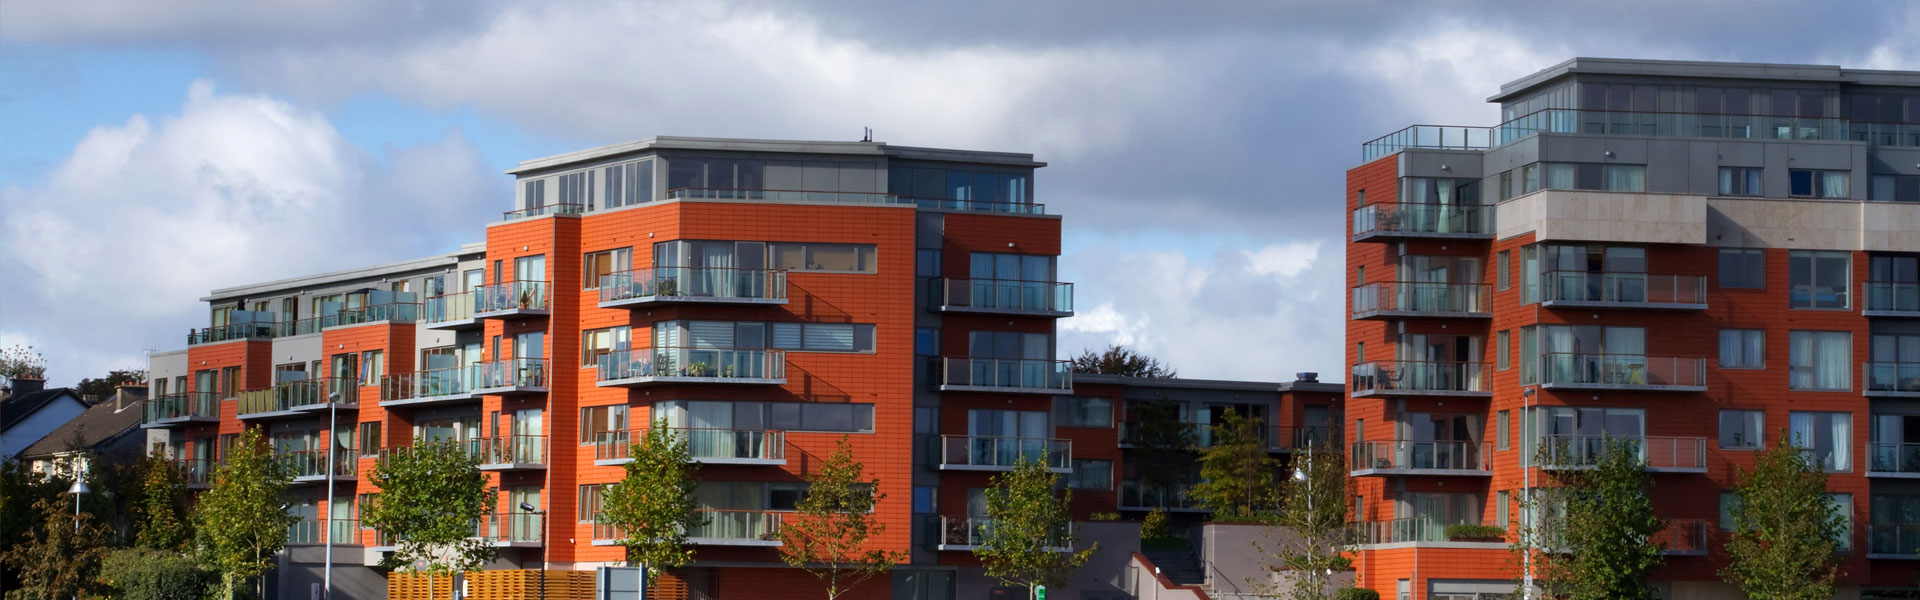 professional Commercial property management in Youghal